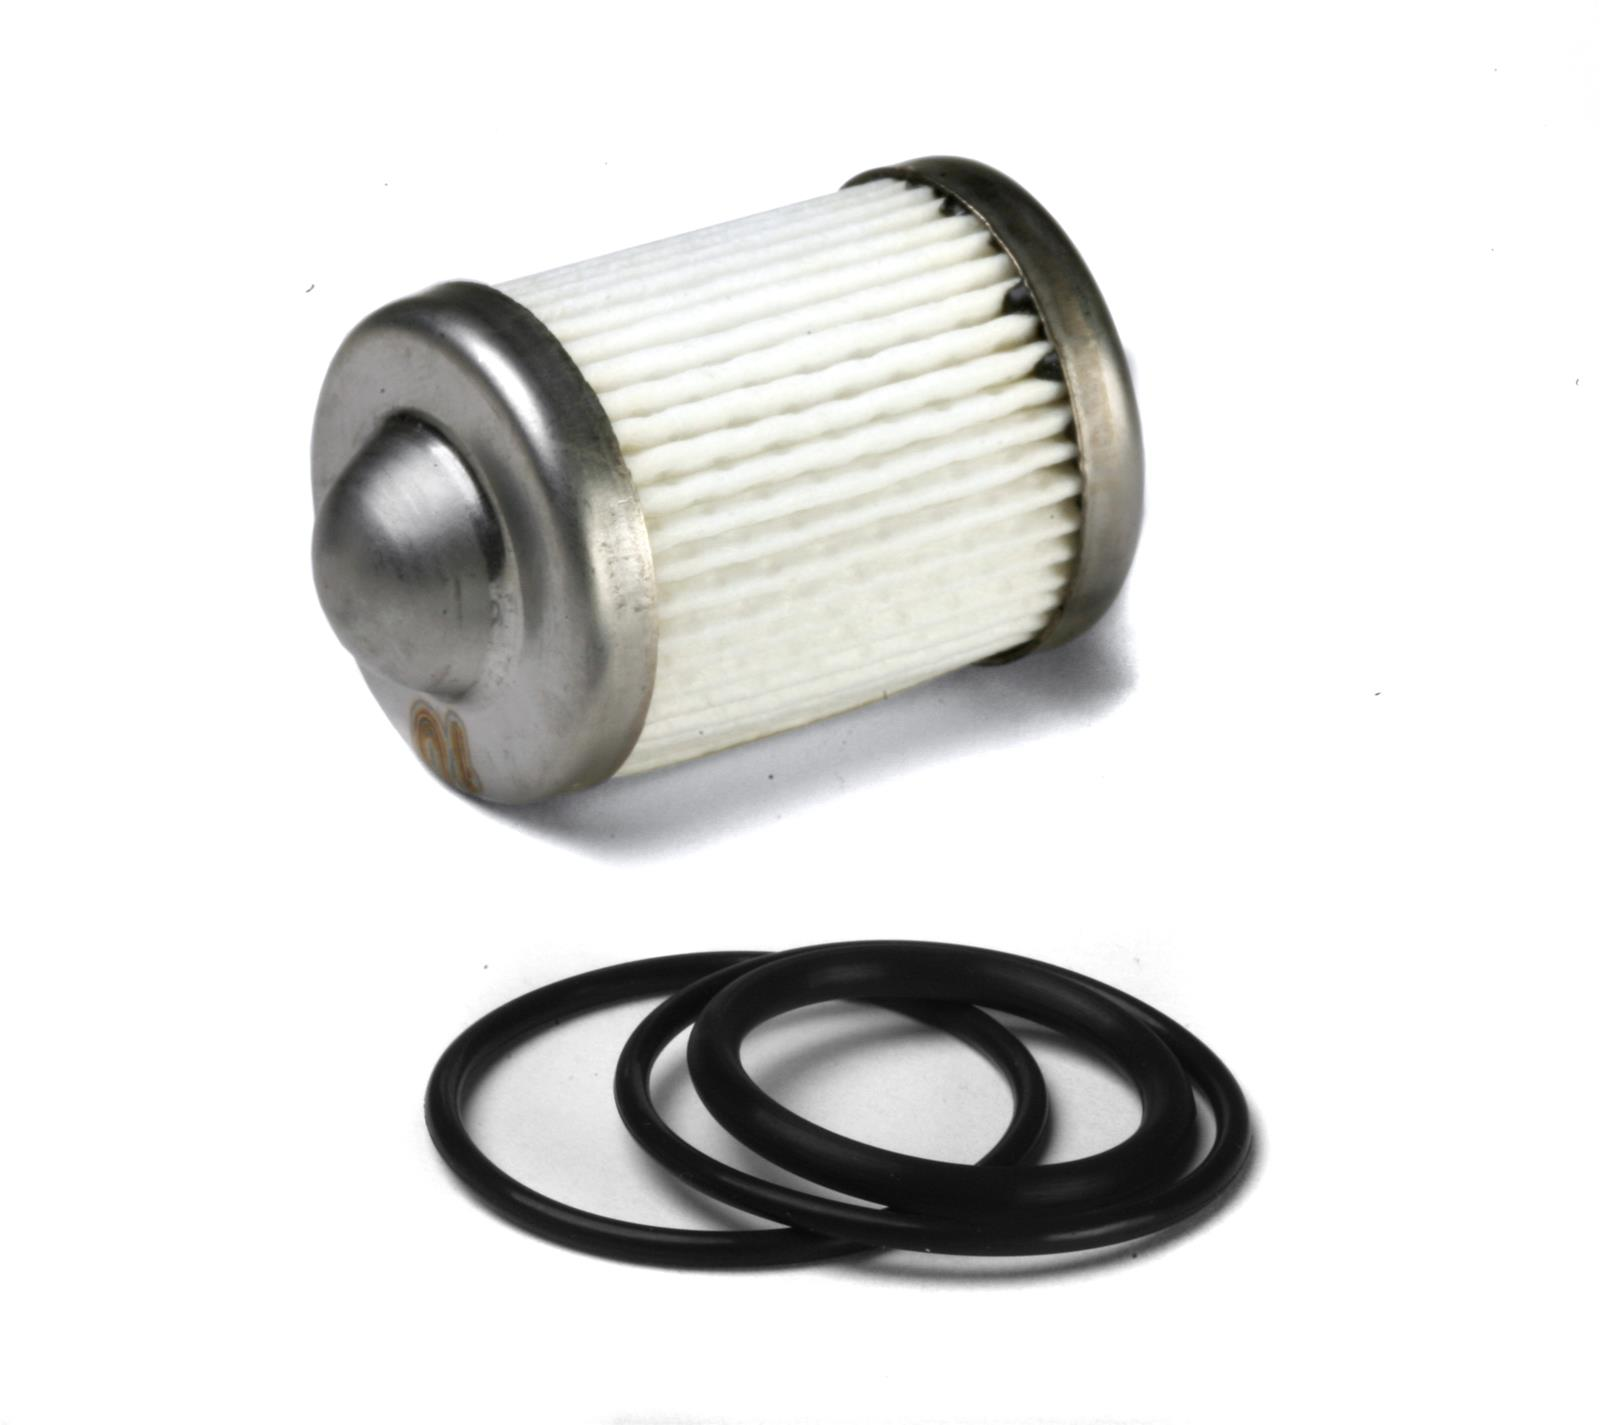 hight resolution of holley hp billet fuel filter replacement elements 162 556 free shipping on orders over 99 at summit racing